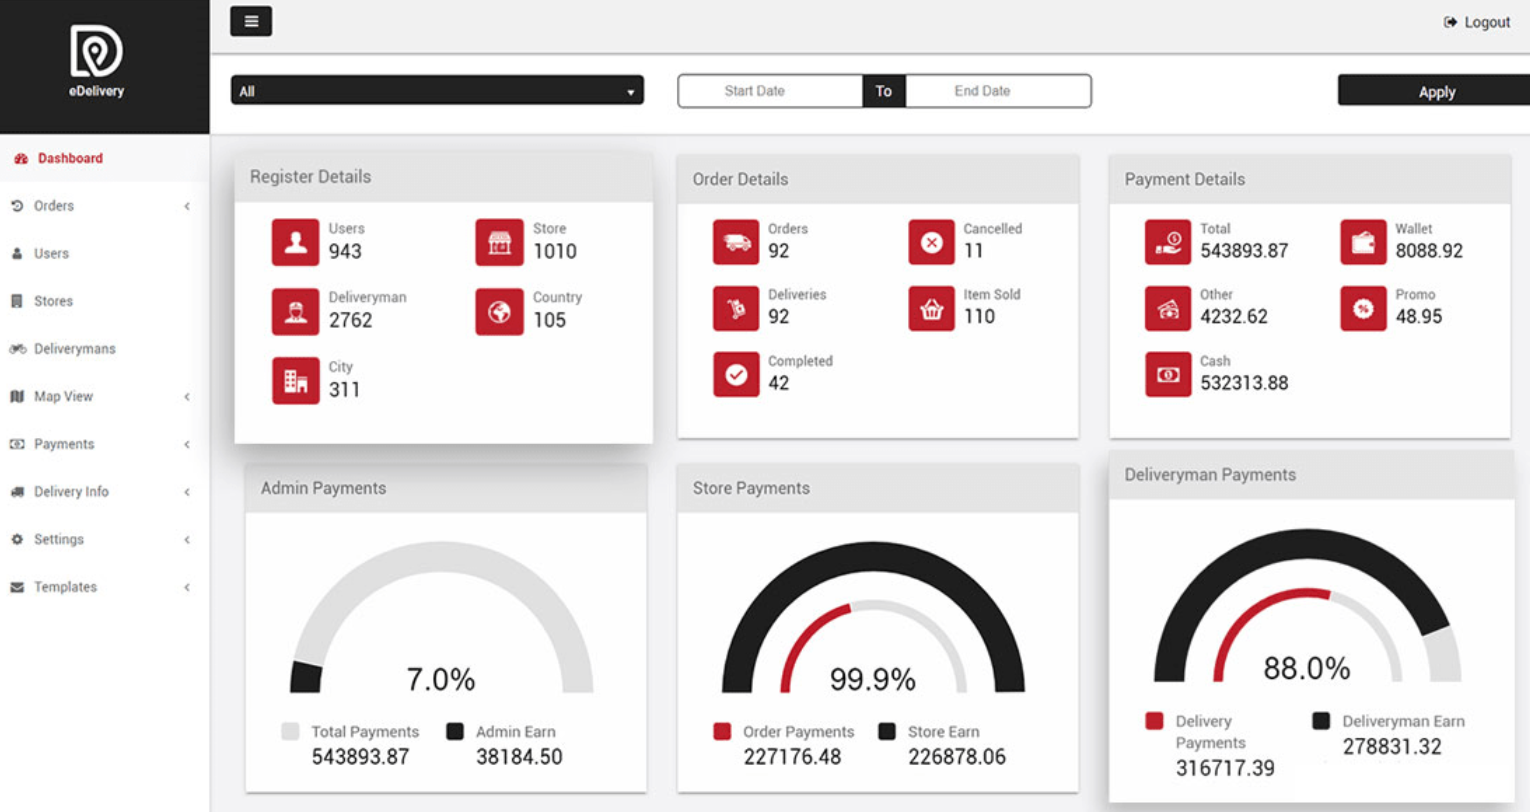 E-Delivery admin dashboard